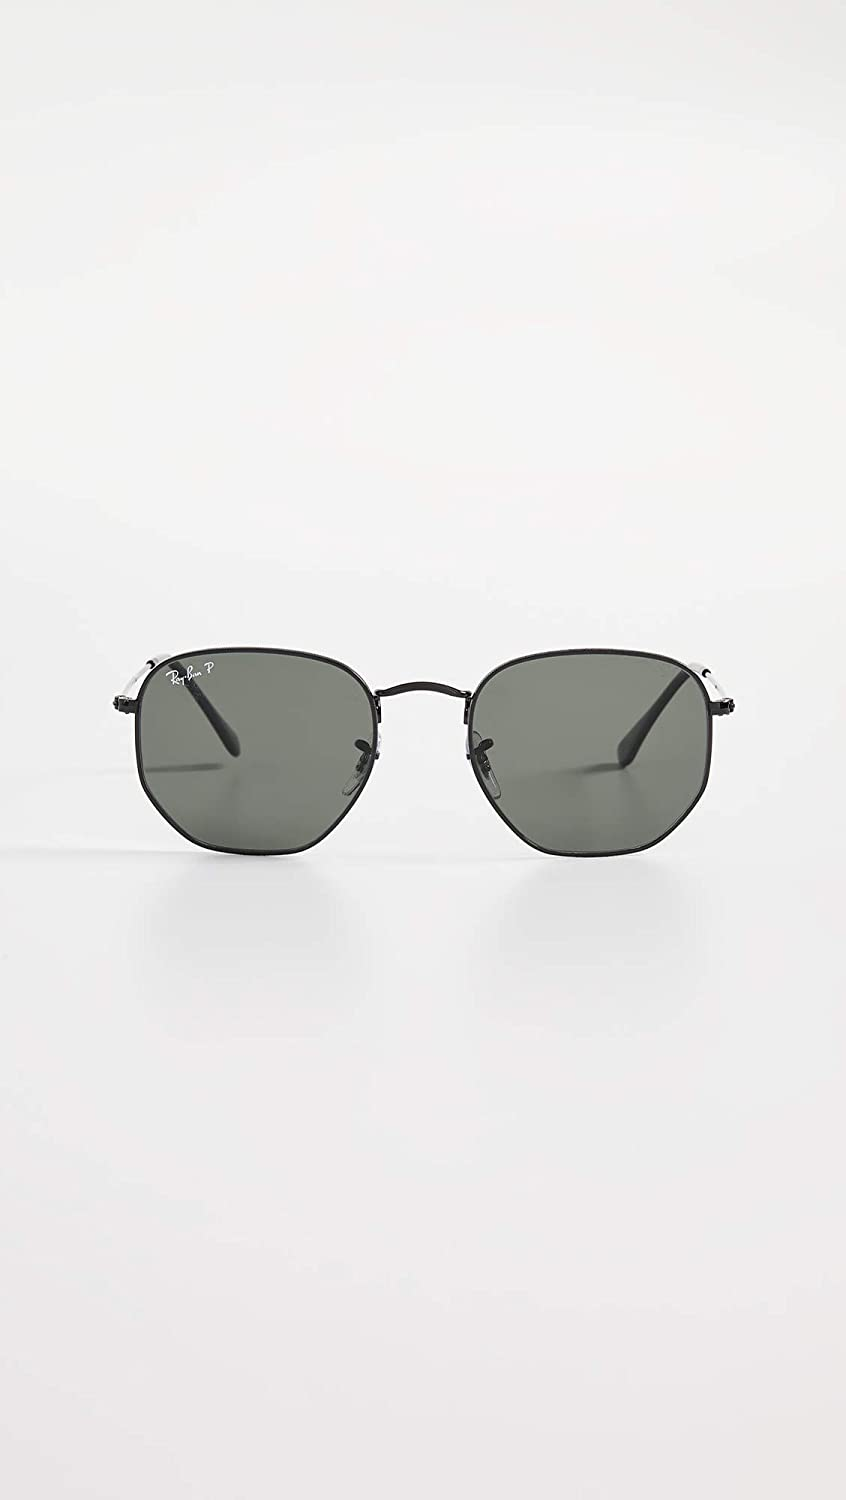 Amazon.com: Ray-Ban RB3548N - Gafas de sol hexagonales para ...